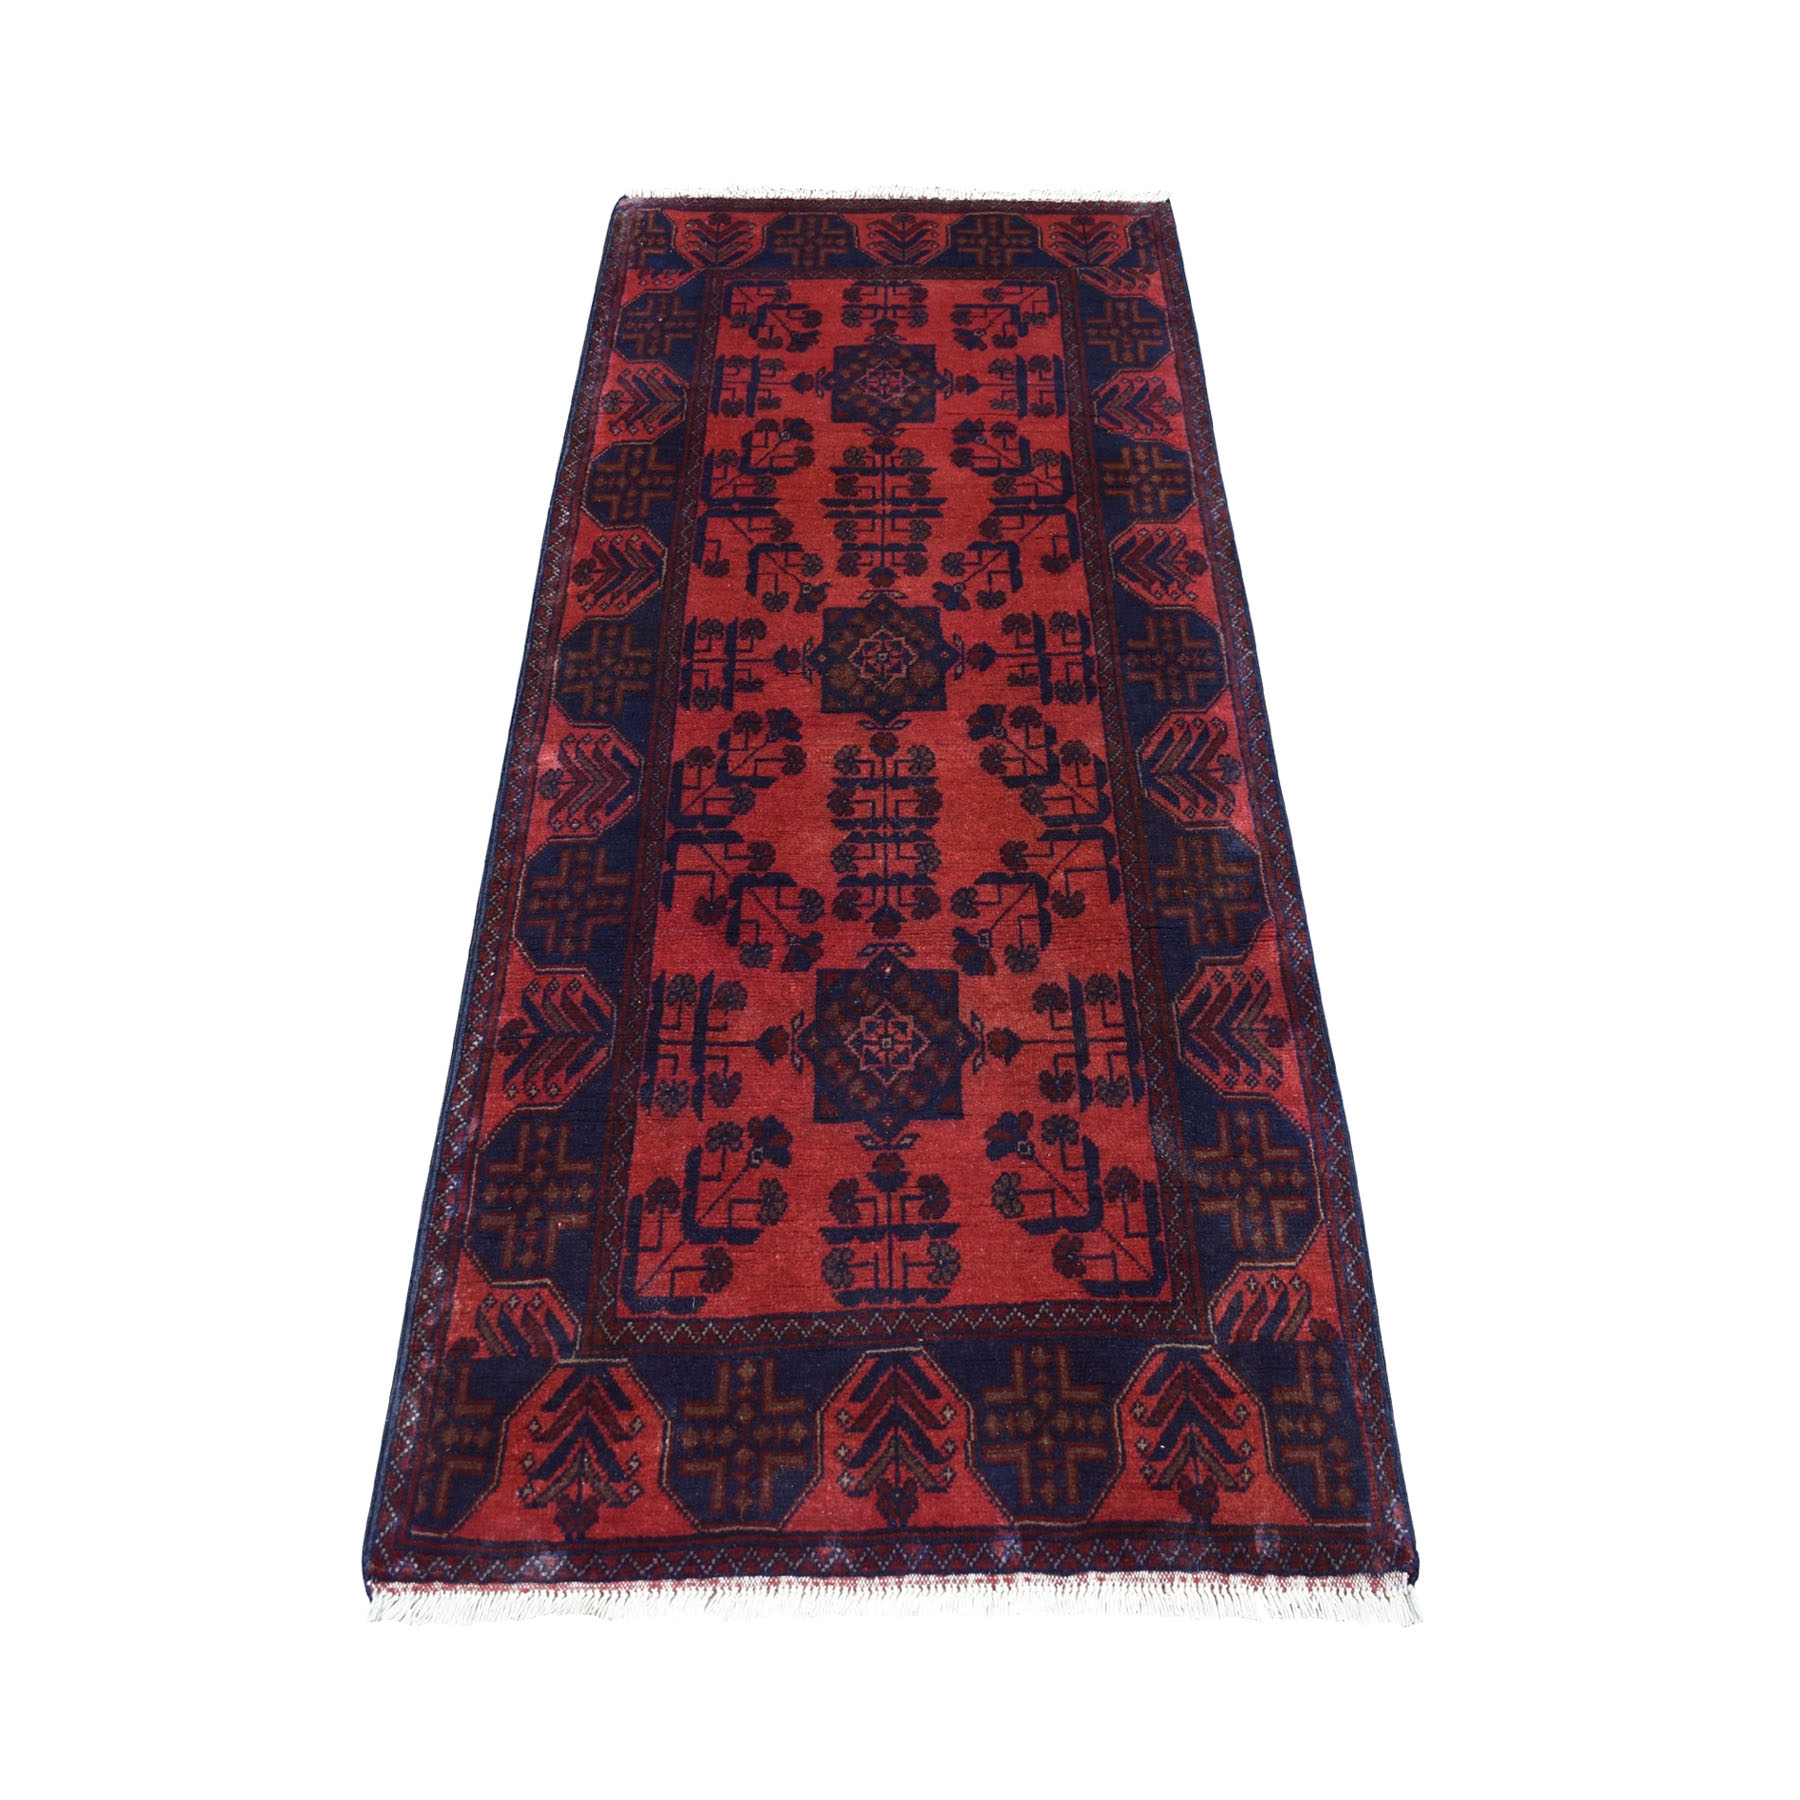 "2'8""X6'1"" Deep And Saturated Red Geometric Afghan Andkhoy Runner Pure Wool Hand Knotted Oriental Rug moaec779"